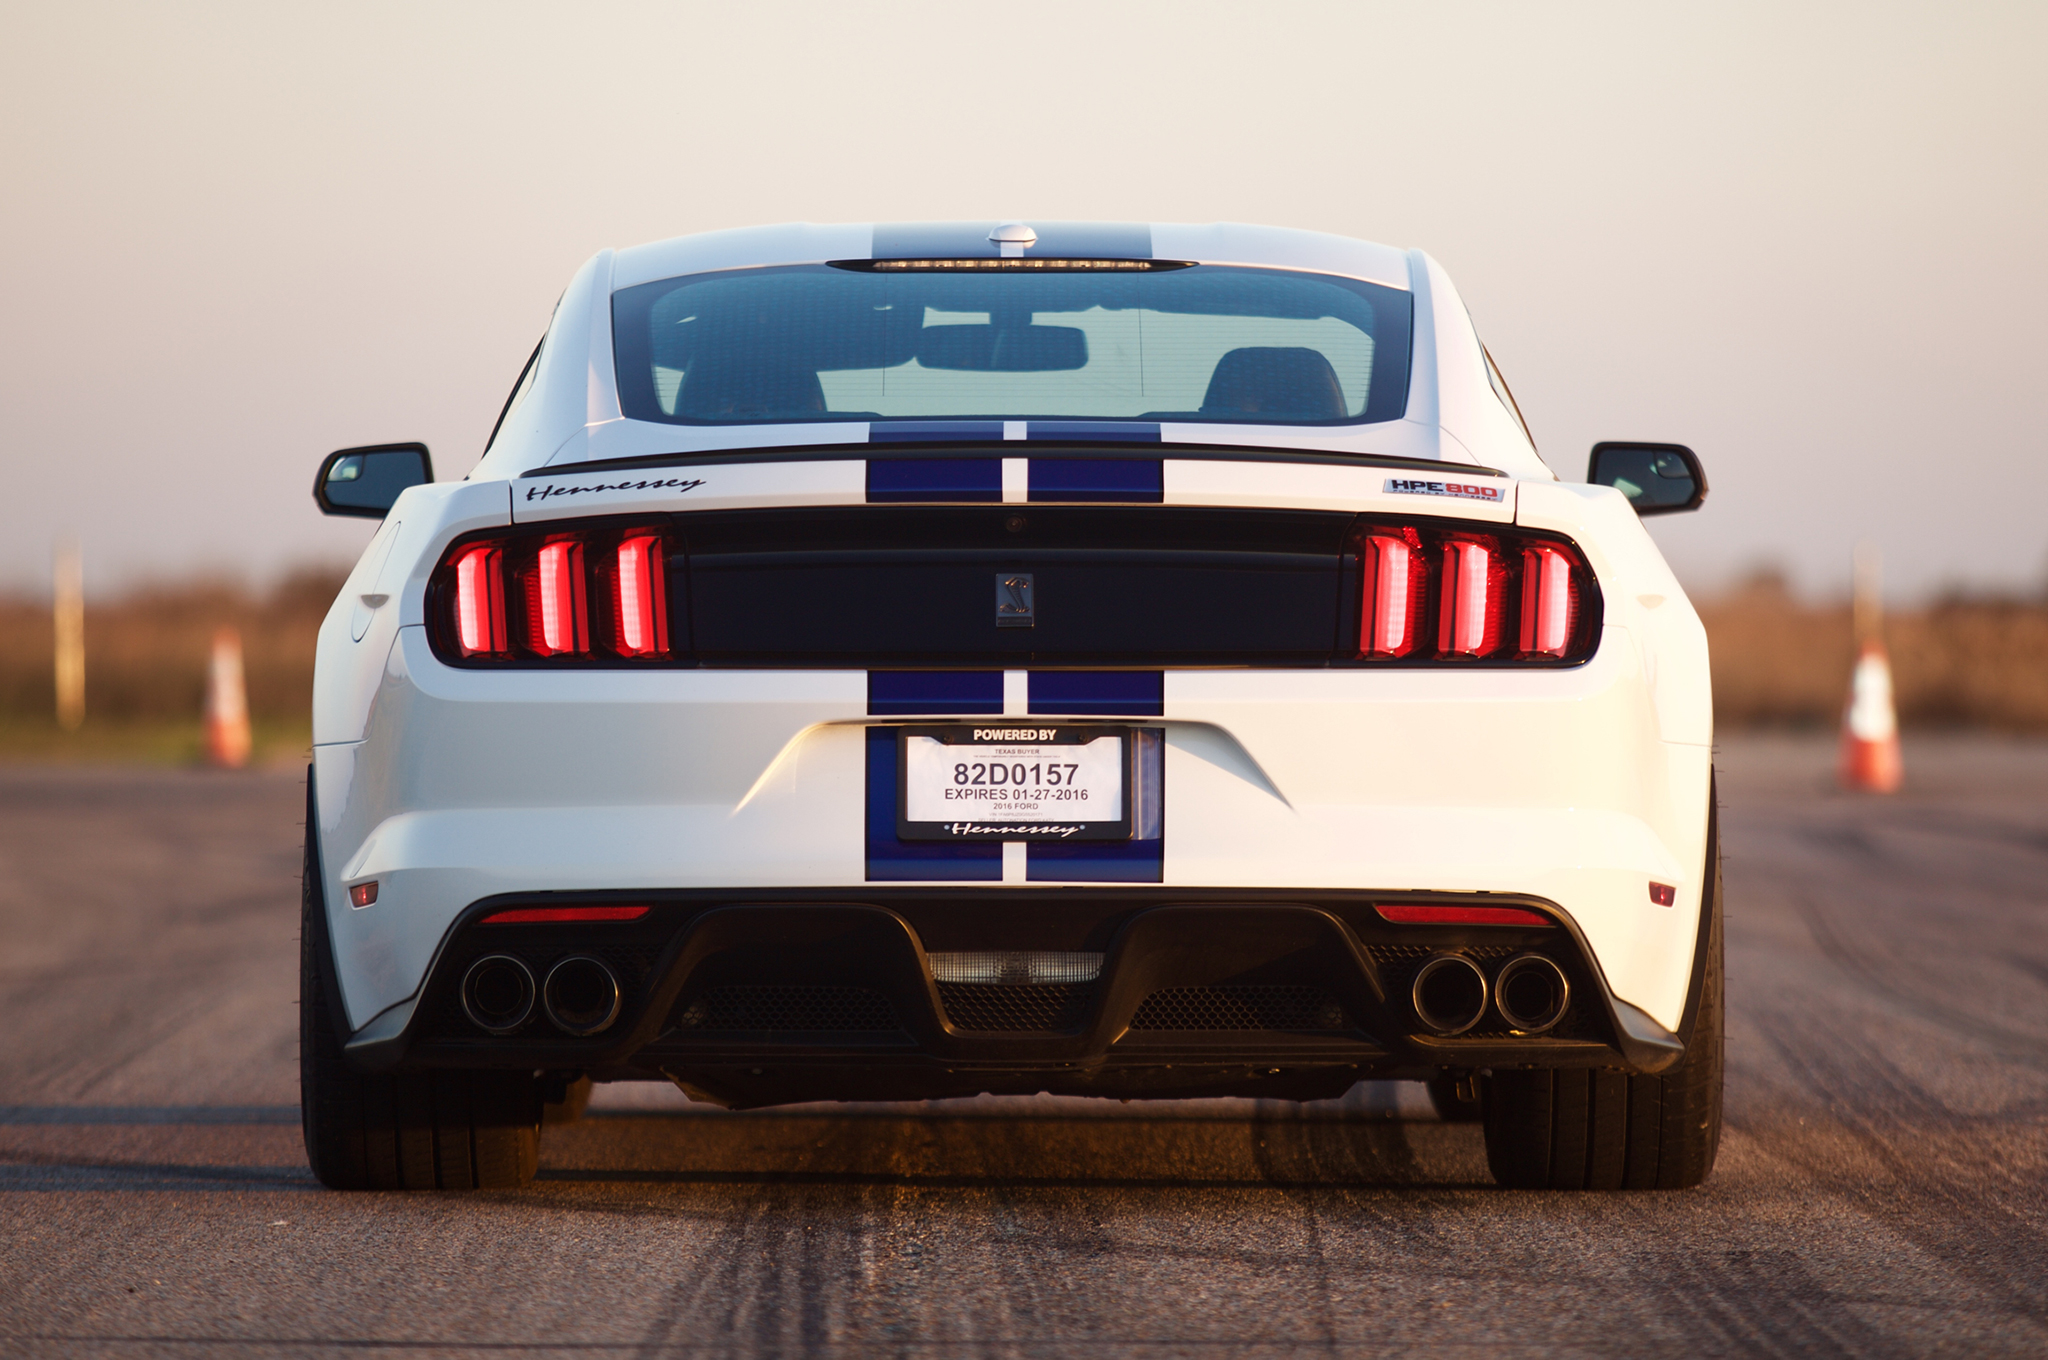 Hennessey GT350 Tuning Kit 4